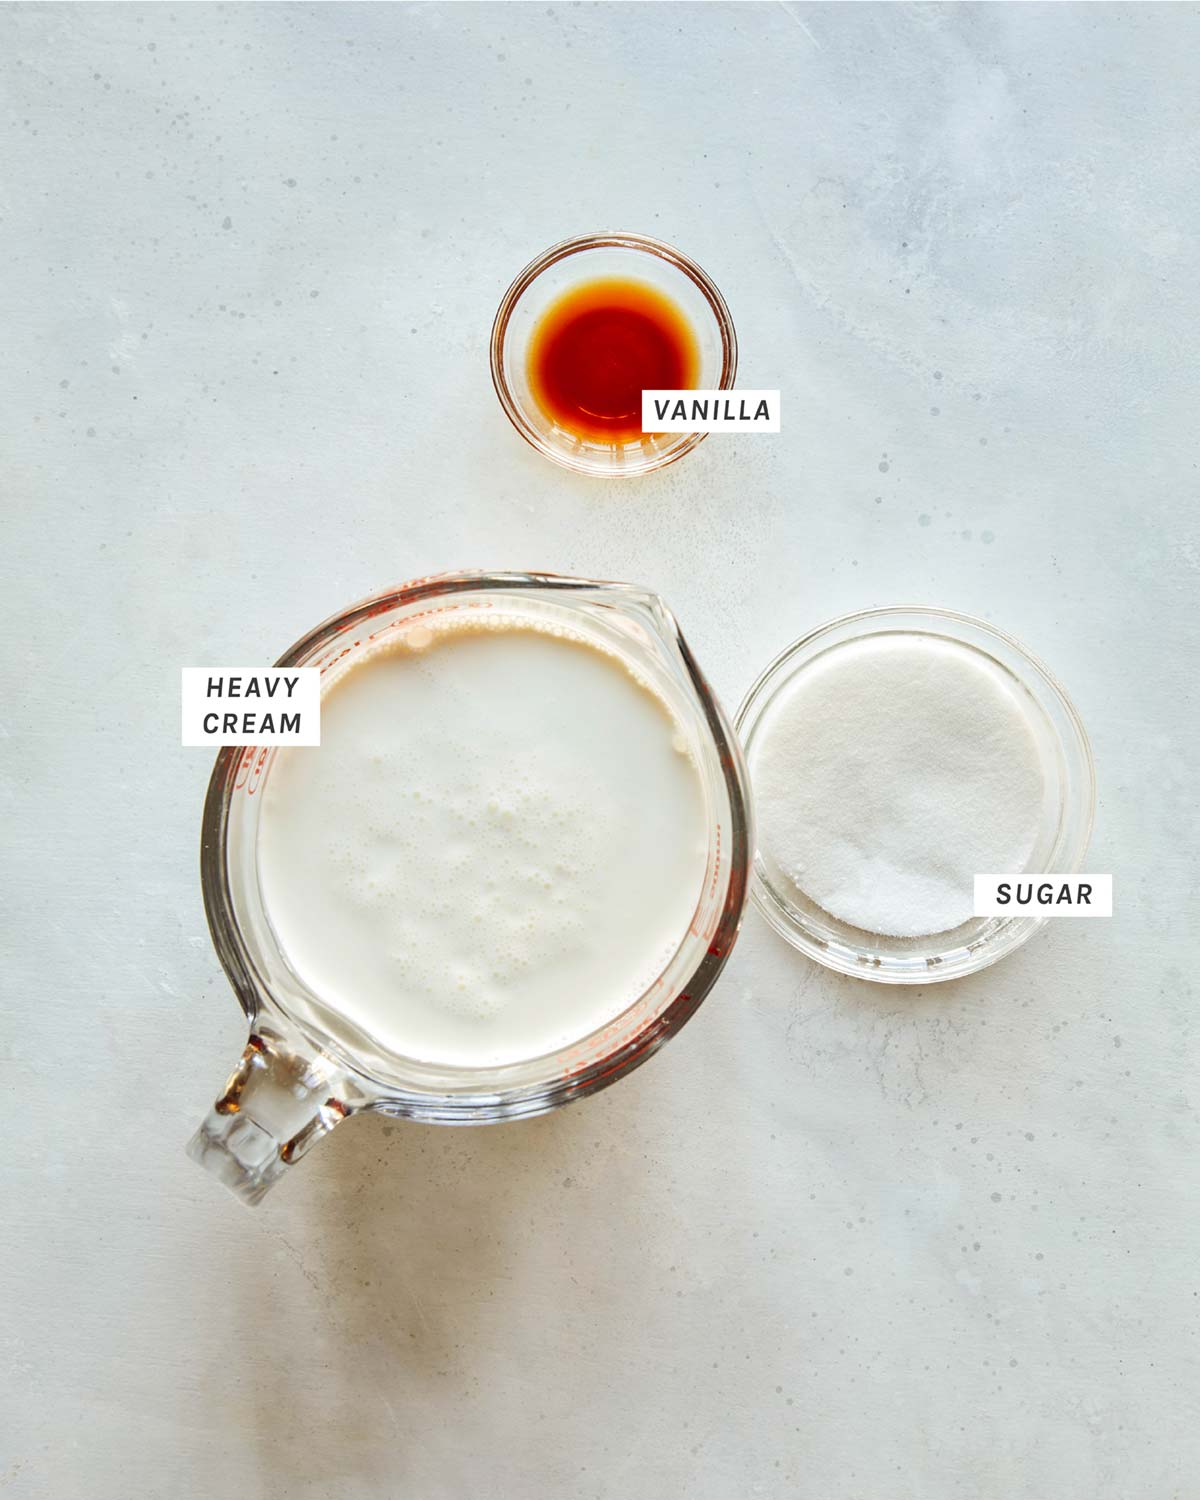 Sweet cream ingredients all laid out on a kitchen counter.